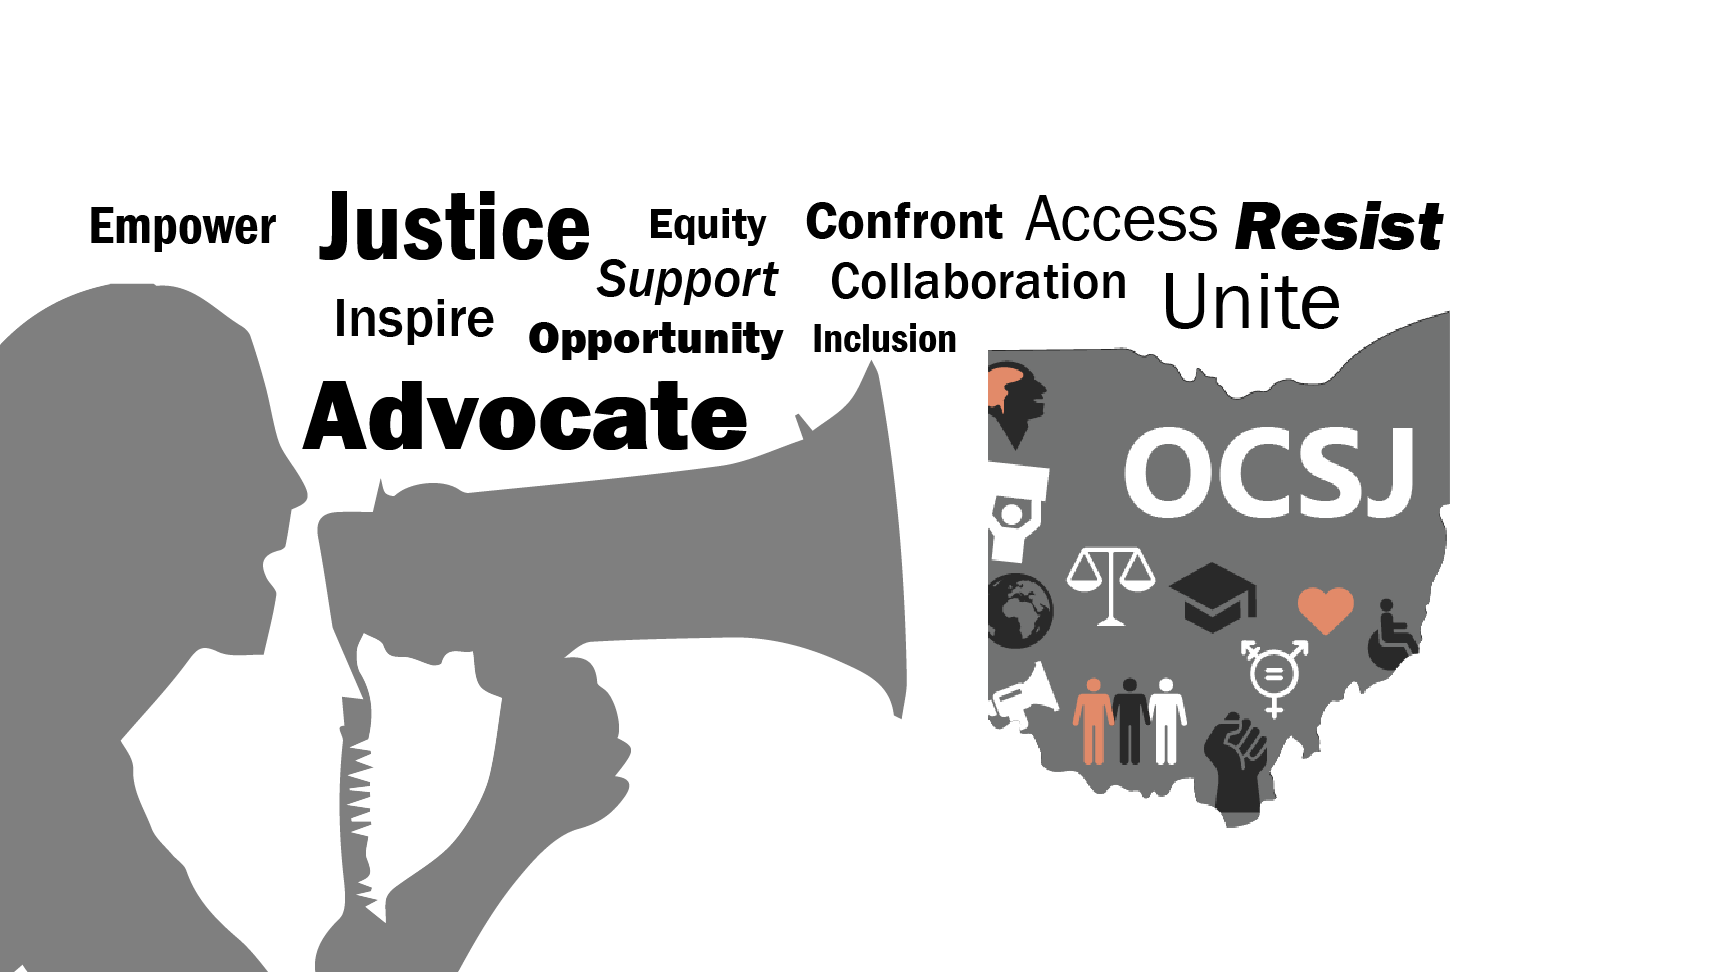 Ohio Counselors for Social Justice